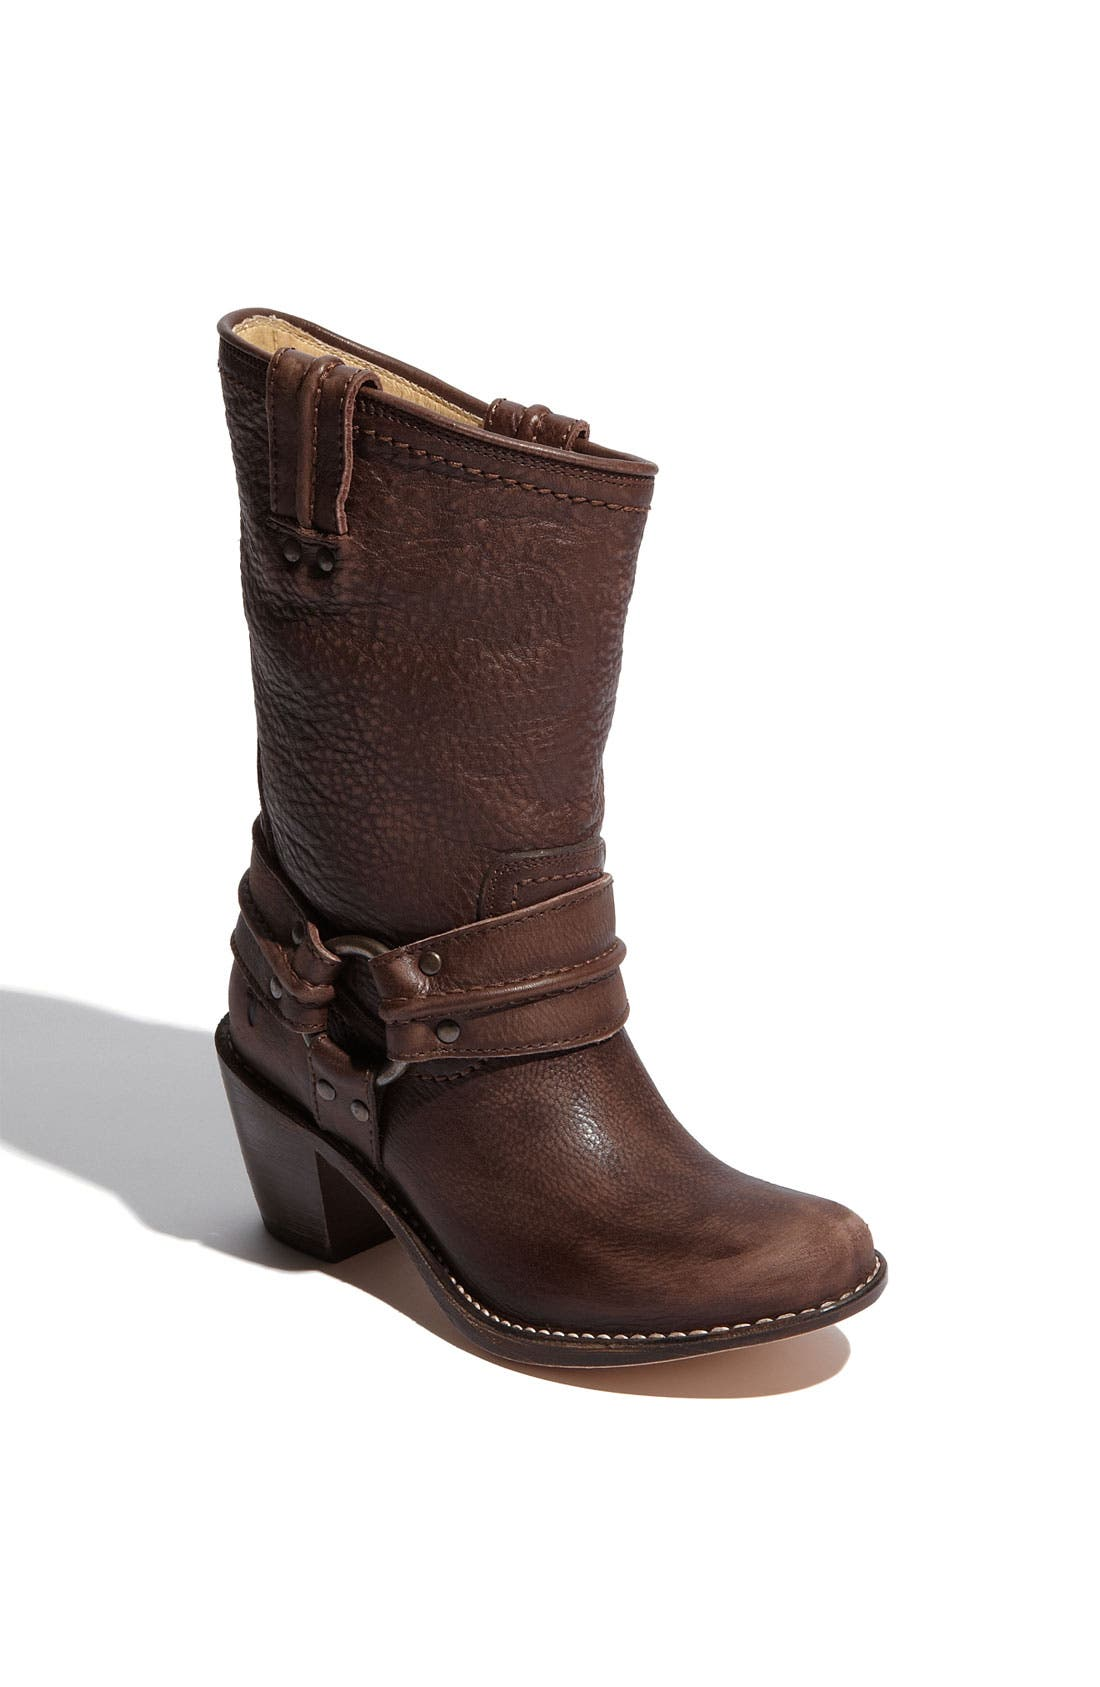 Main Image - Frye 'Carmen' Harness Boot